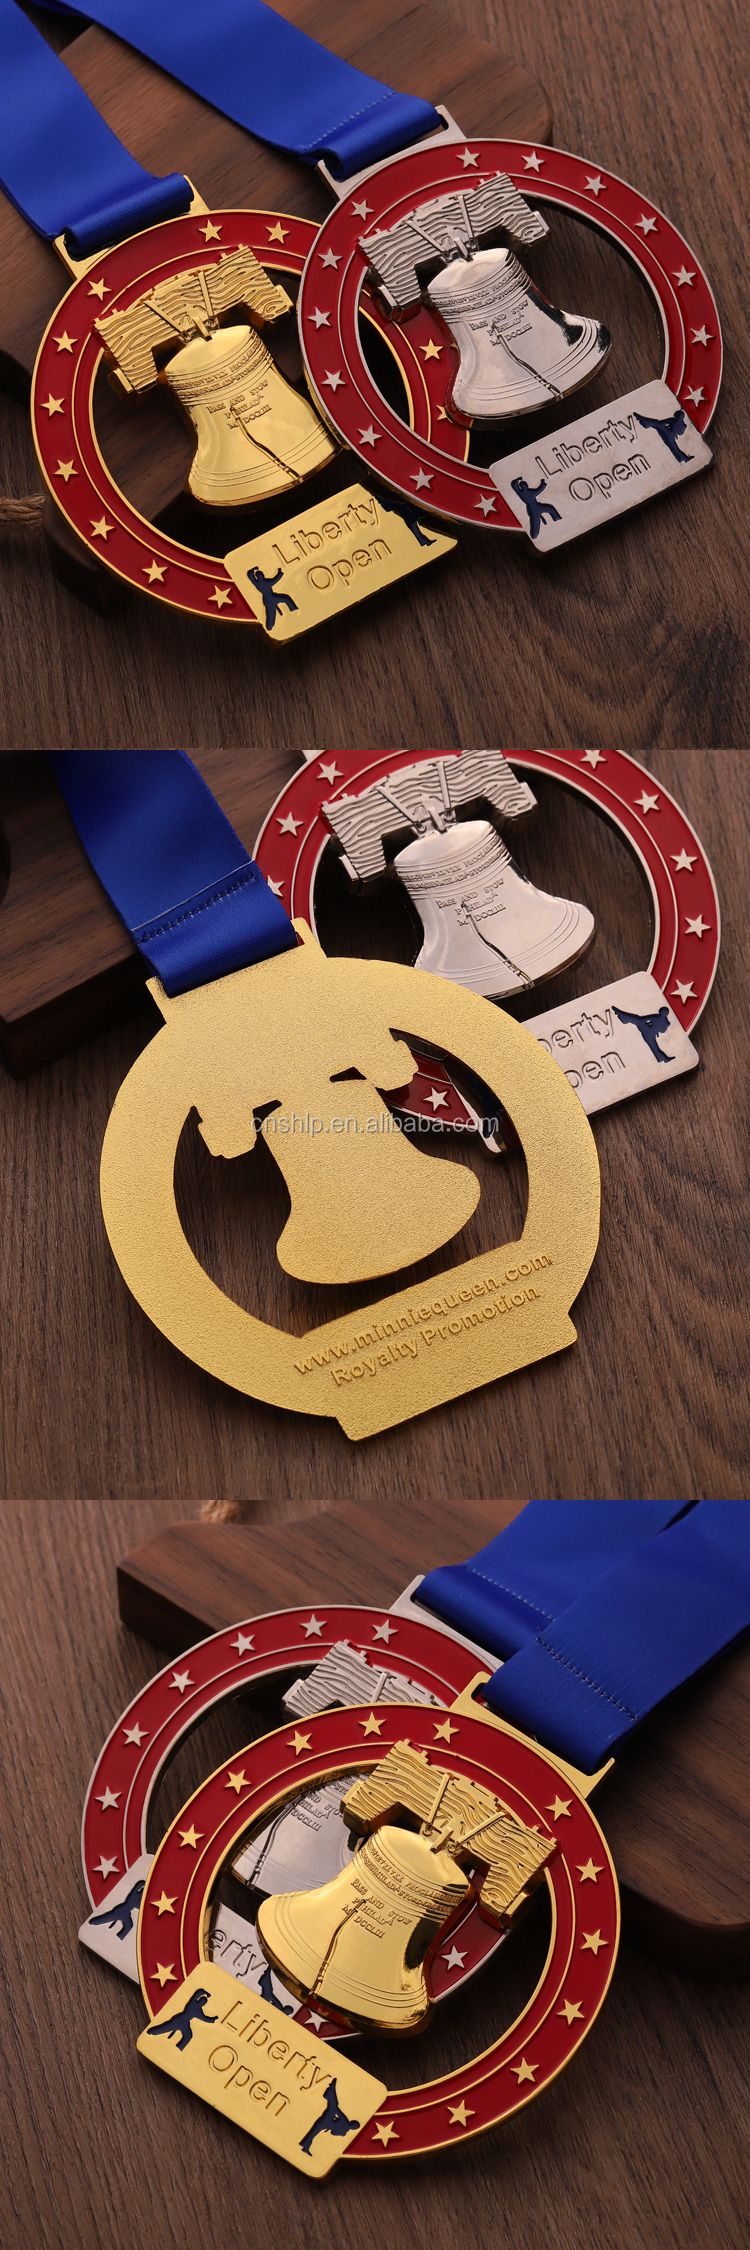 Zinc alloy die cast metal custom Karate medals for open tournament